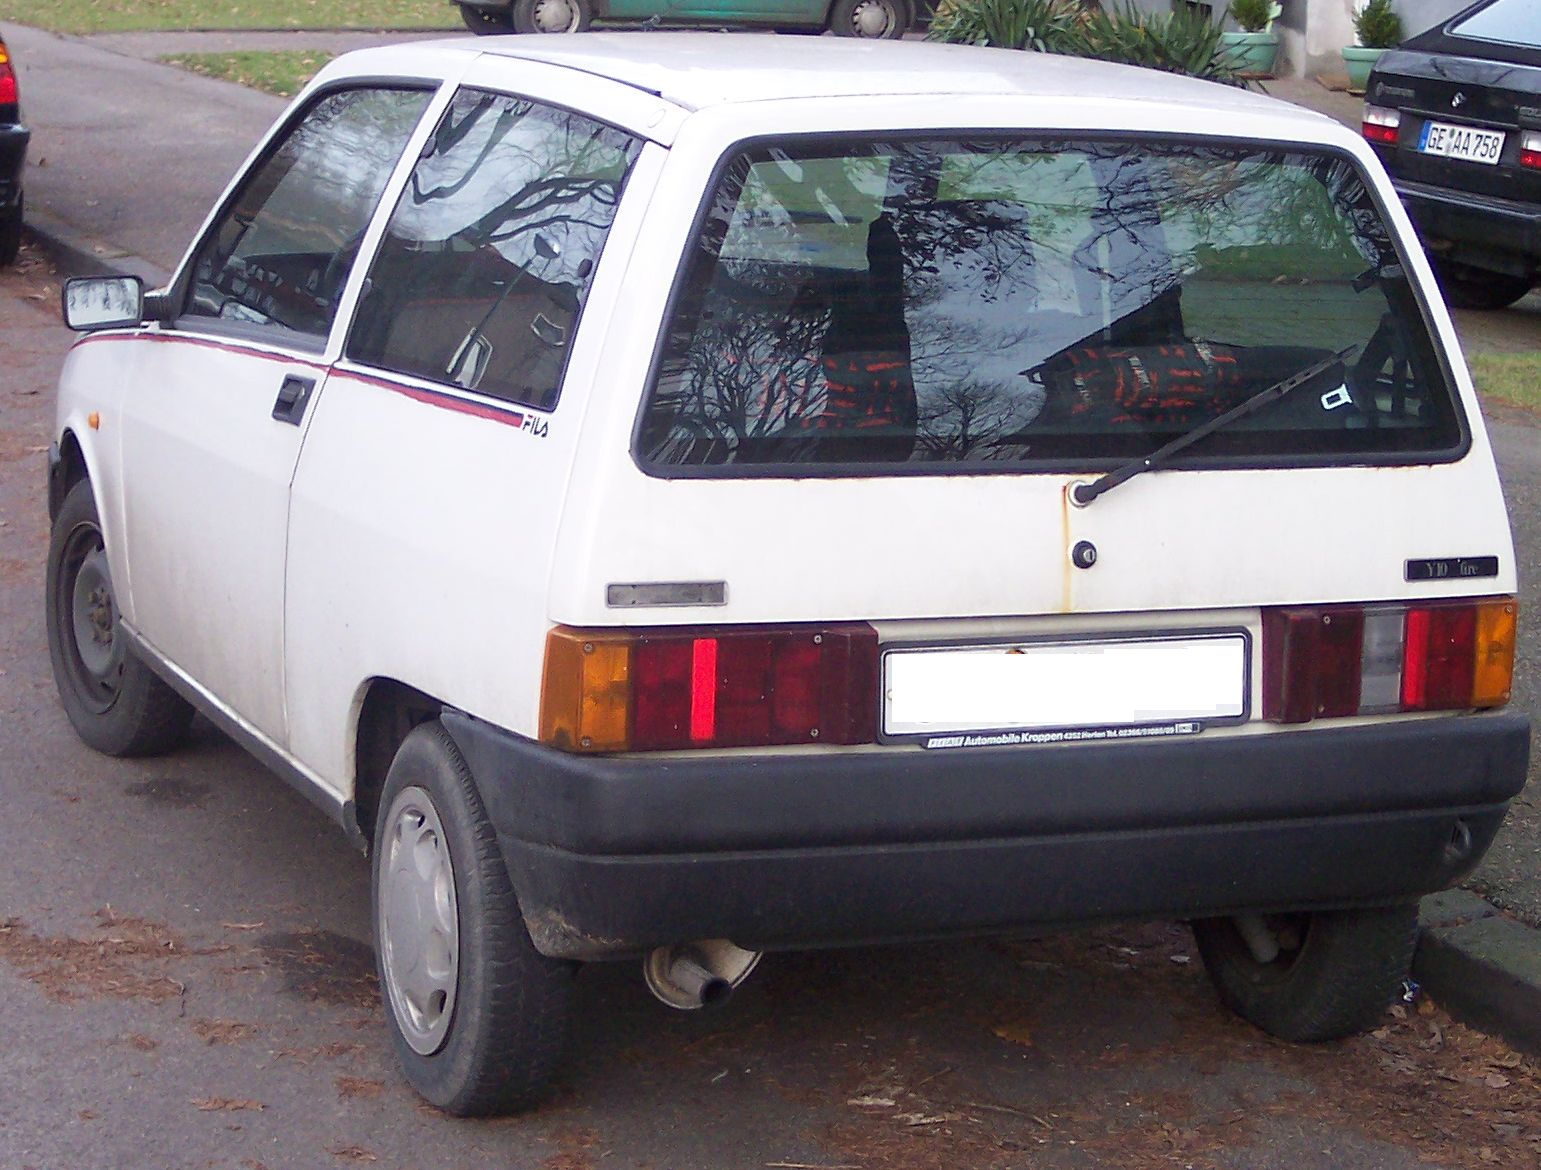 File:Lancia Y10 hl white.jpg - Wikimedia Commons